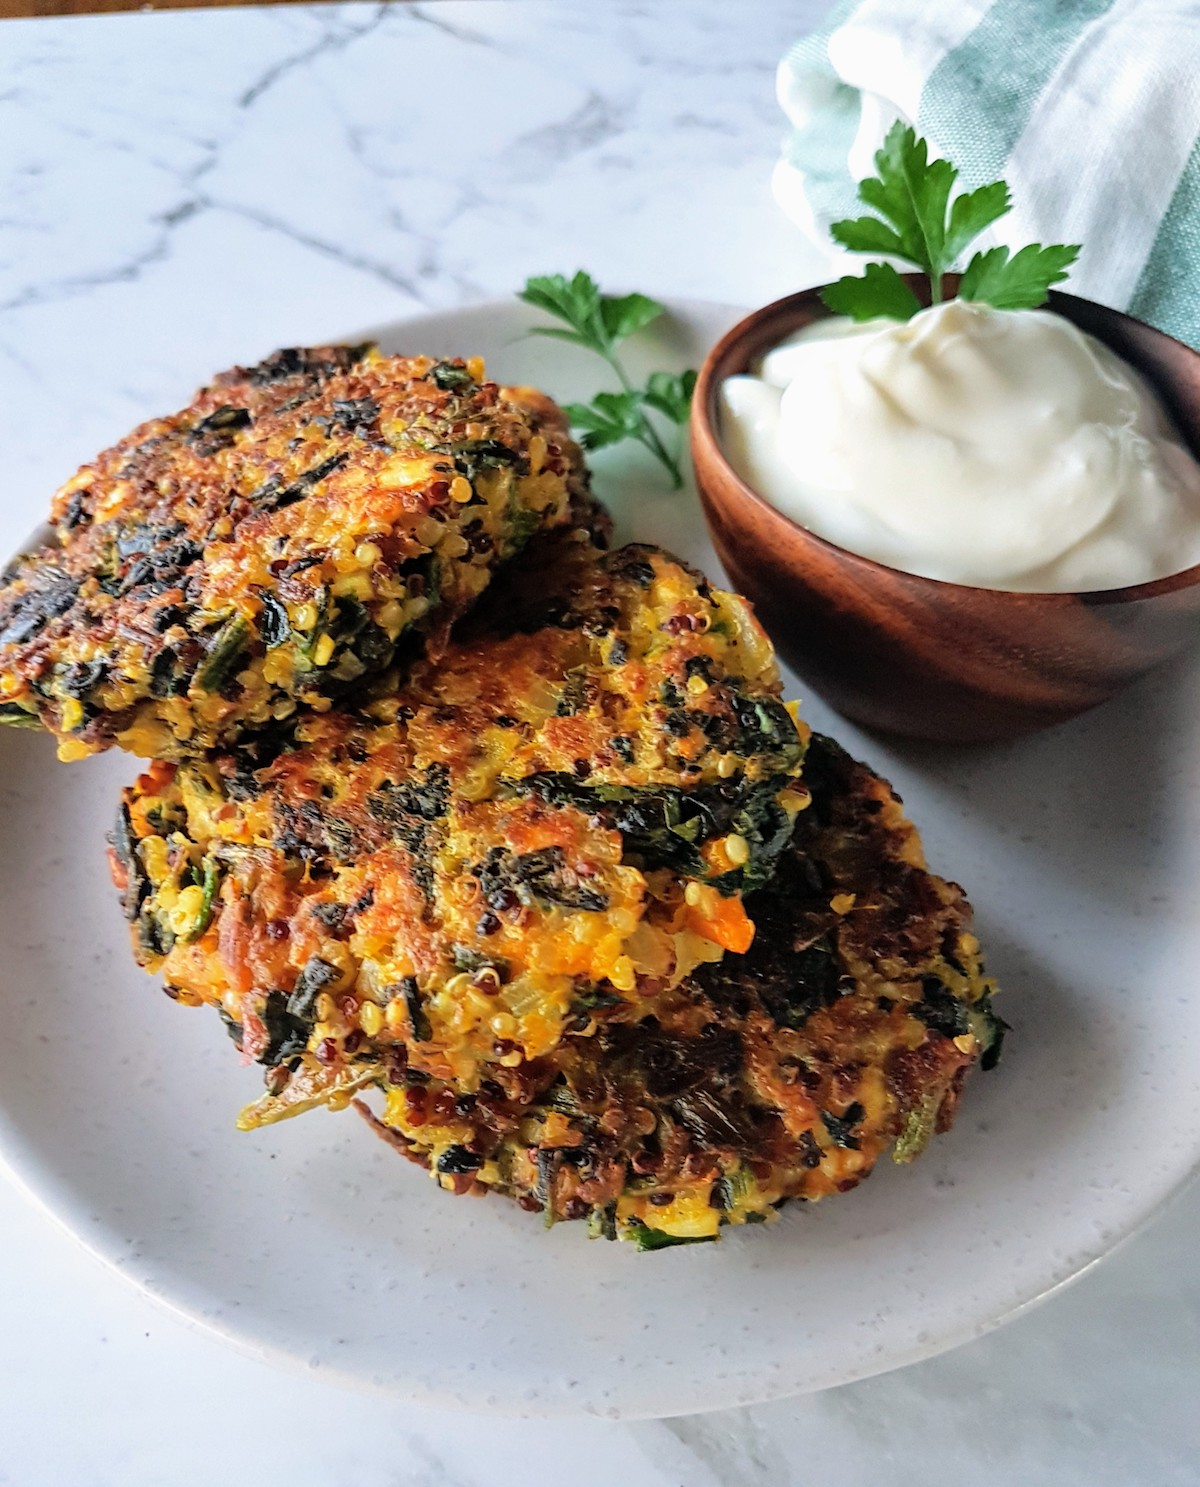 My family loves these Winter Grain & Veggie Cakes.  What I like most about them is the versatility.  You basically combine grains that work for the season.